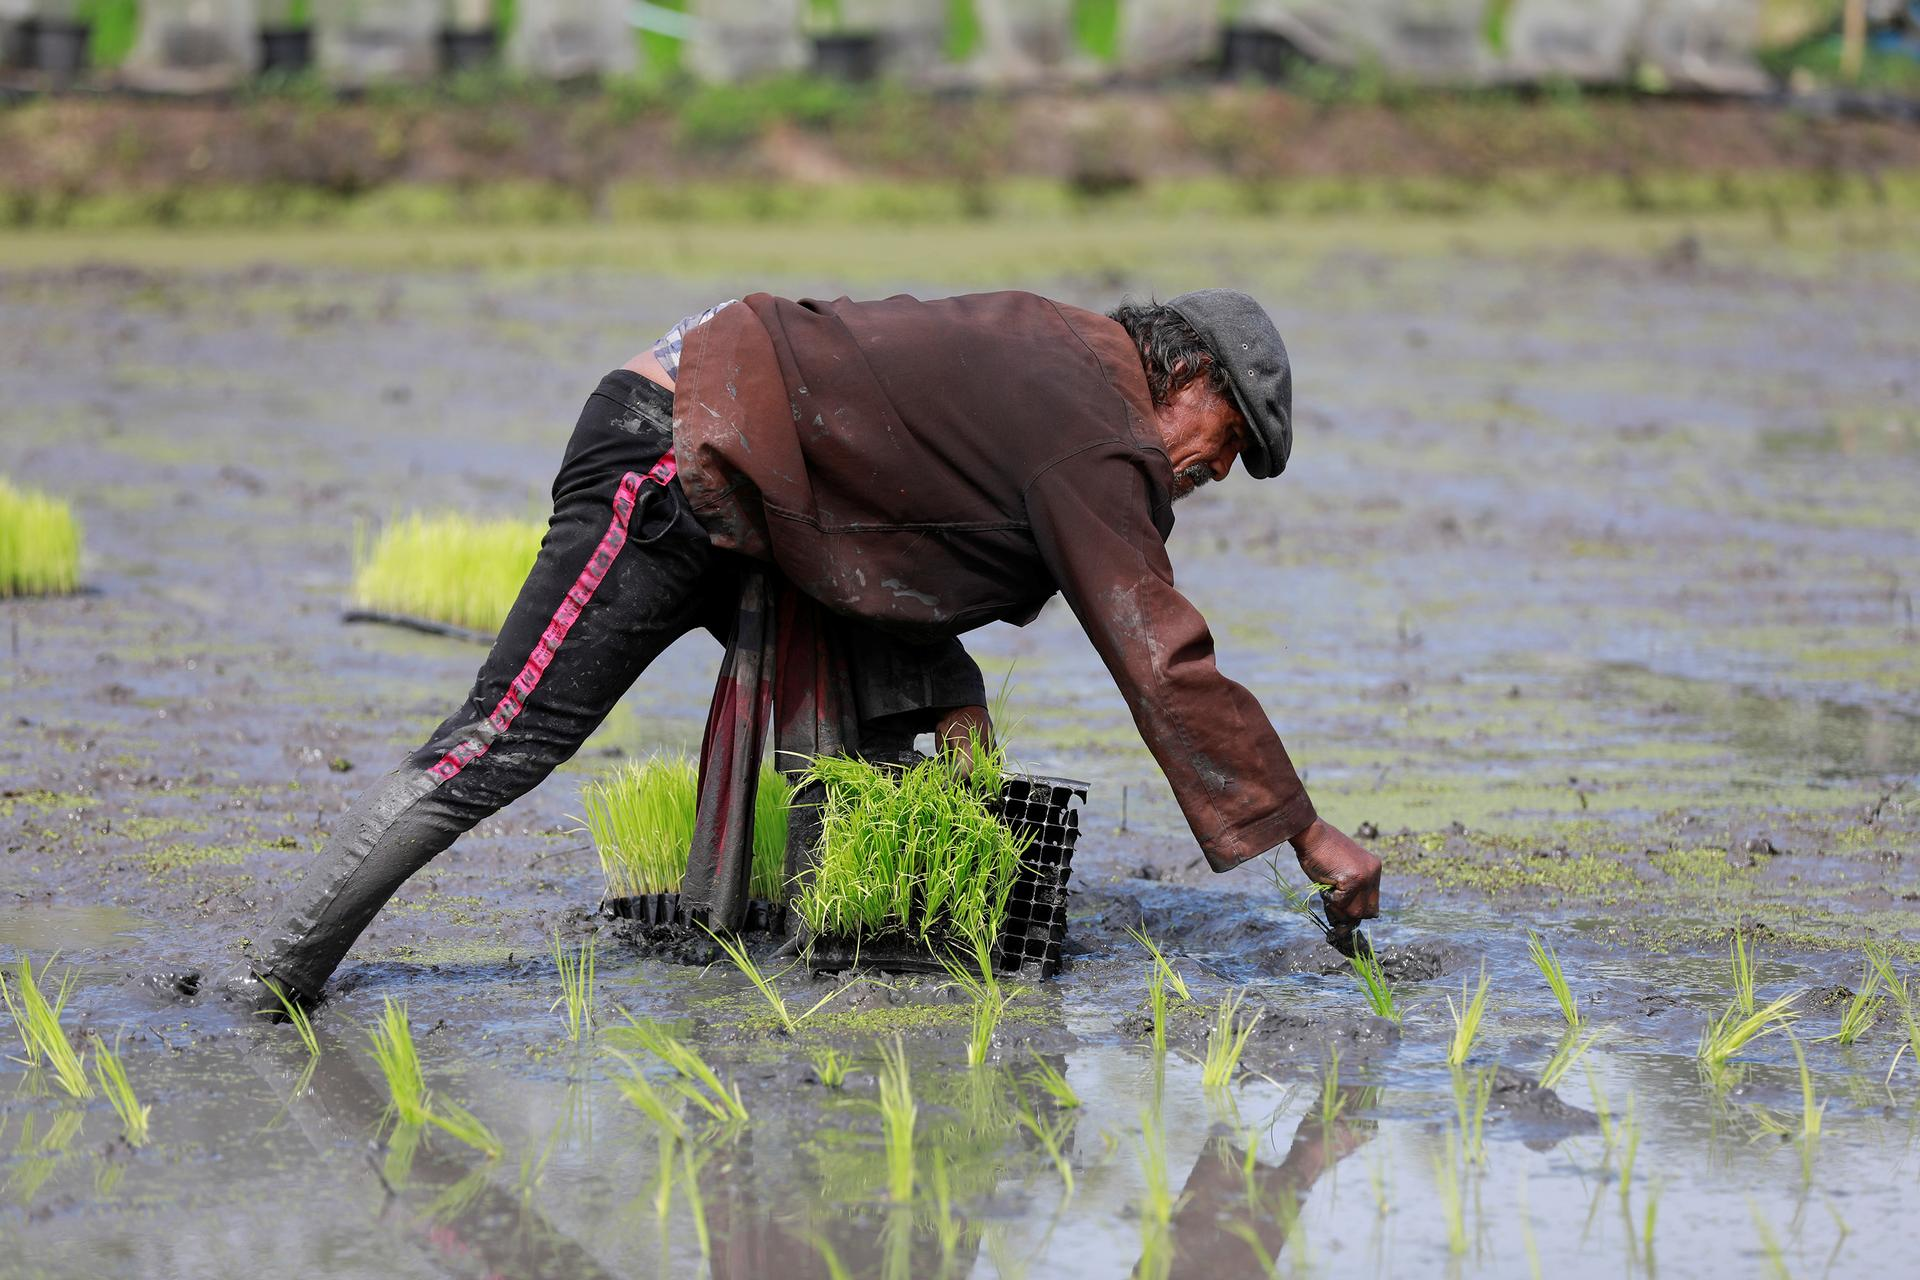 Asia Rice-Firm rupee lifts Indian rates; Vietnam prices hold near 12-year low